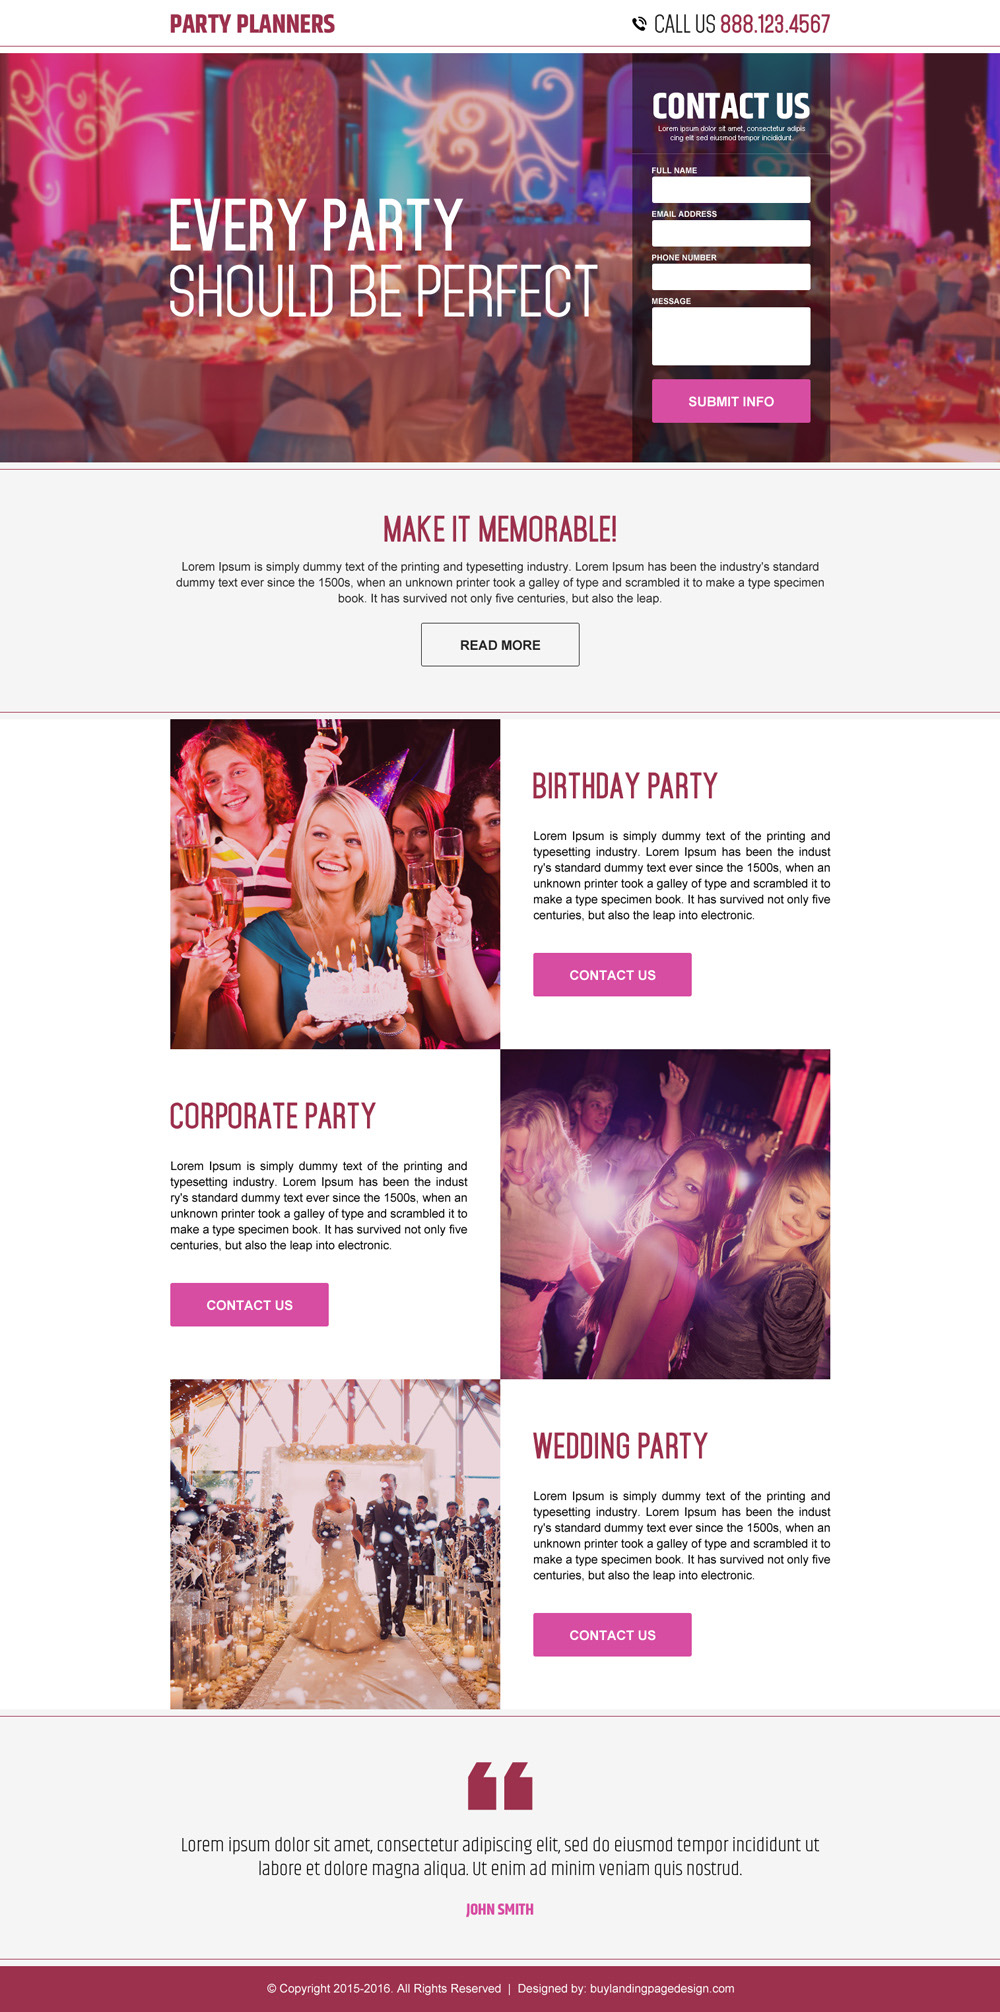 best party planners landing page